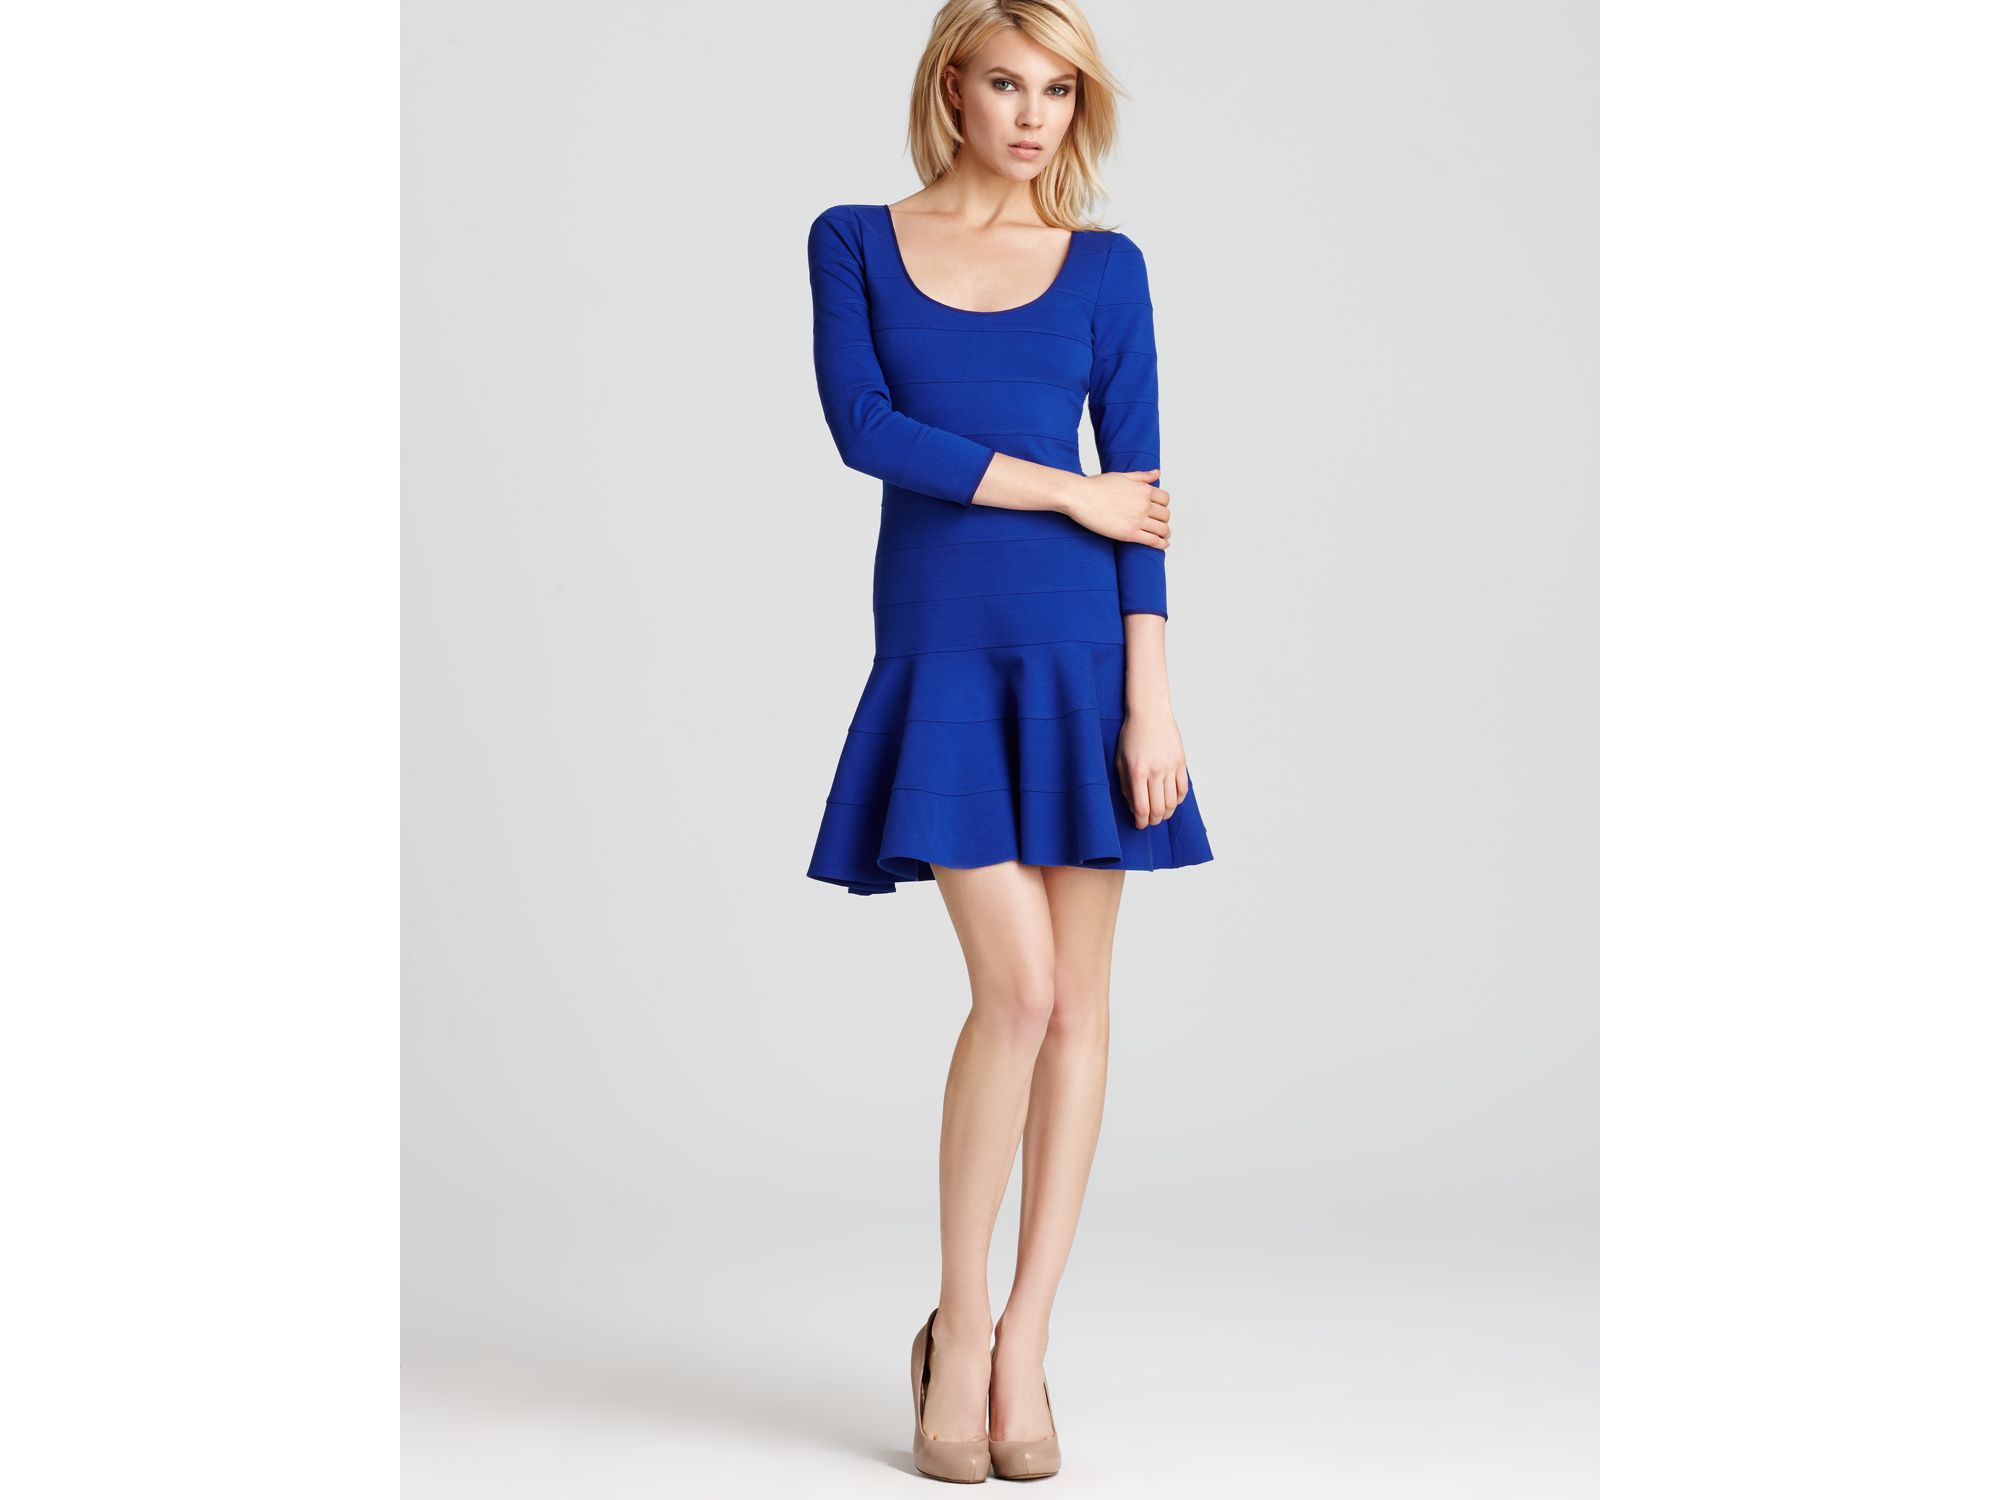 Lyst - Juicy Couture Dress Pieced Fluid Ponte Banded in Blue 908ec6dba